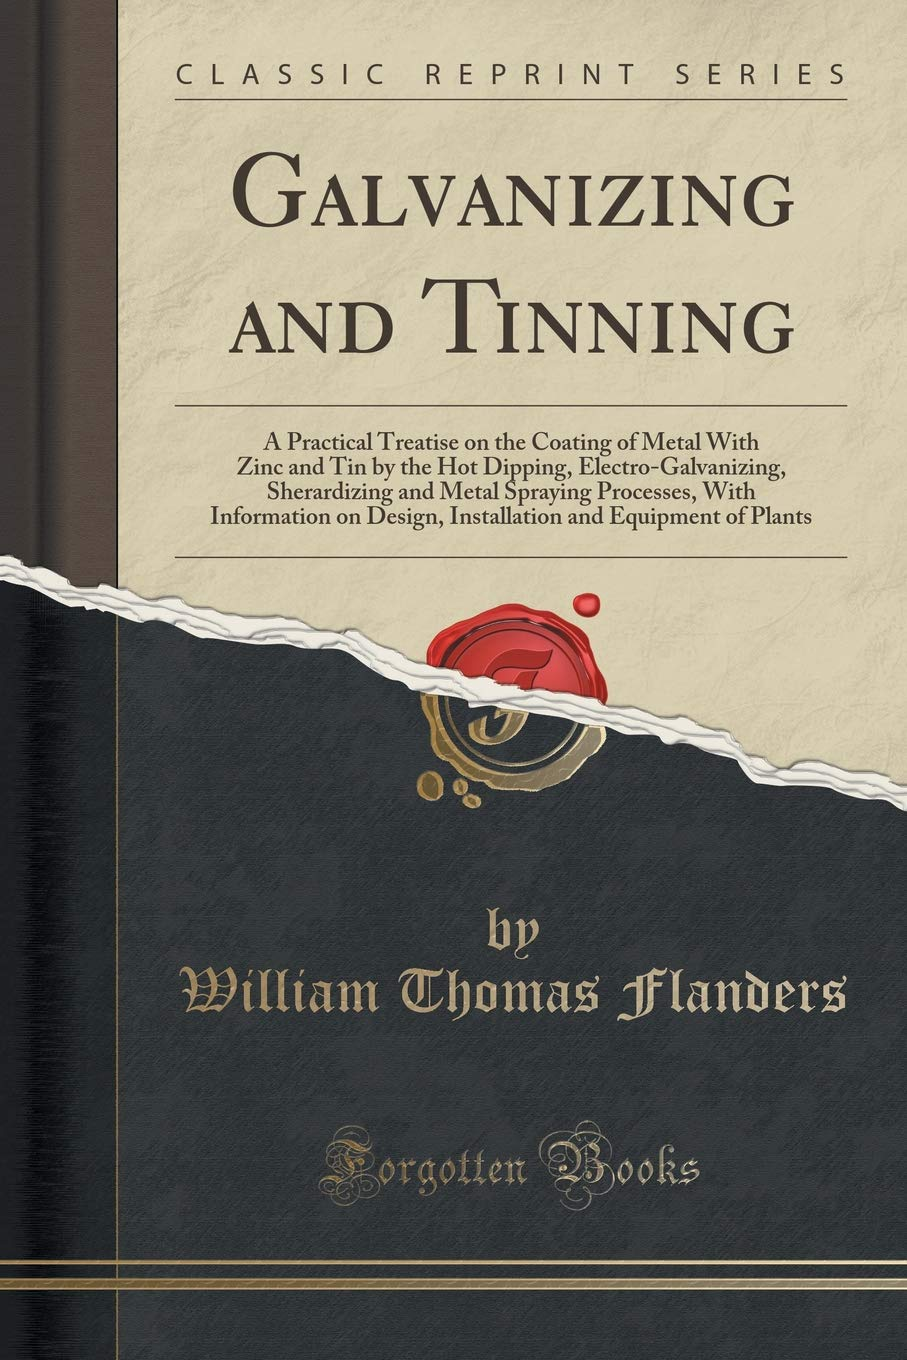 Galvanizing and Tinning: A Practical Treatise on the Coating